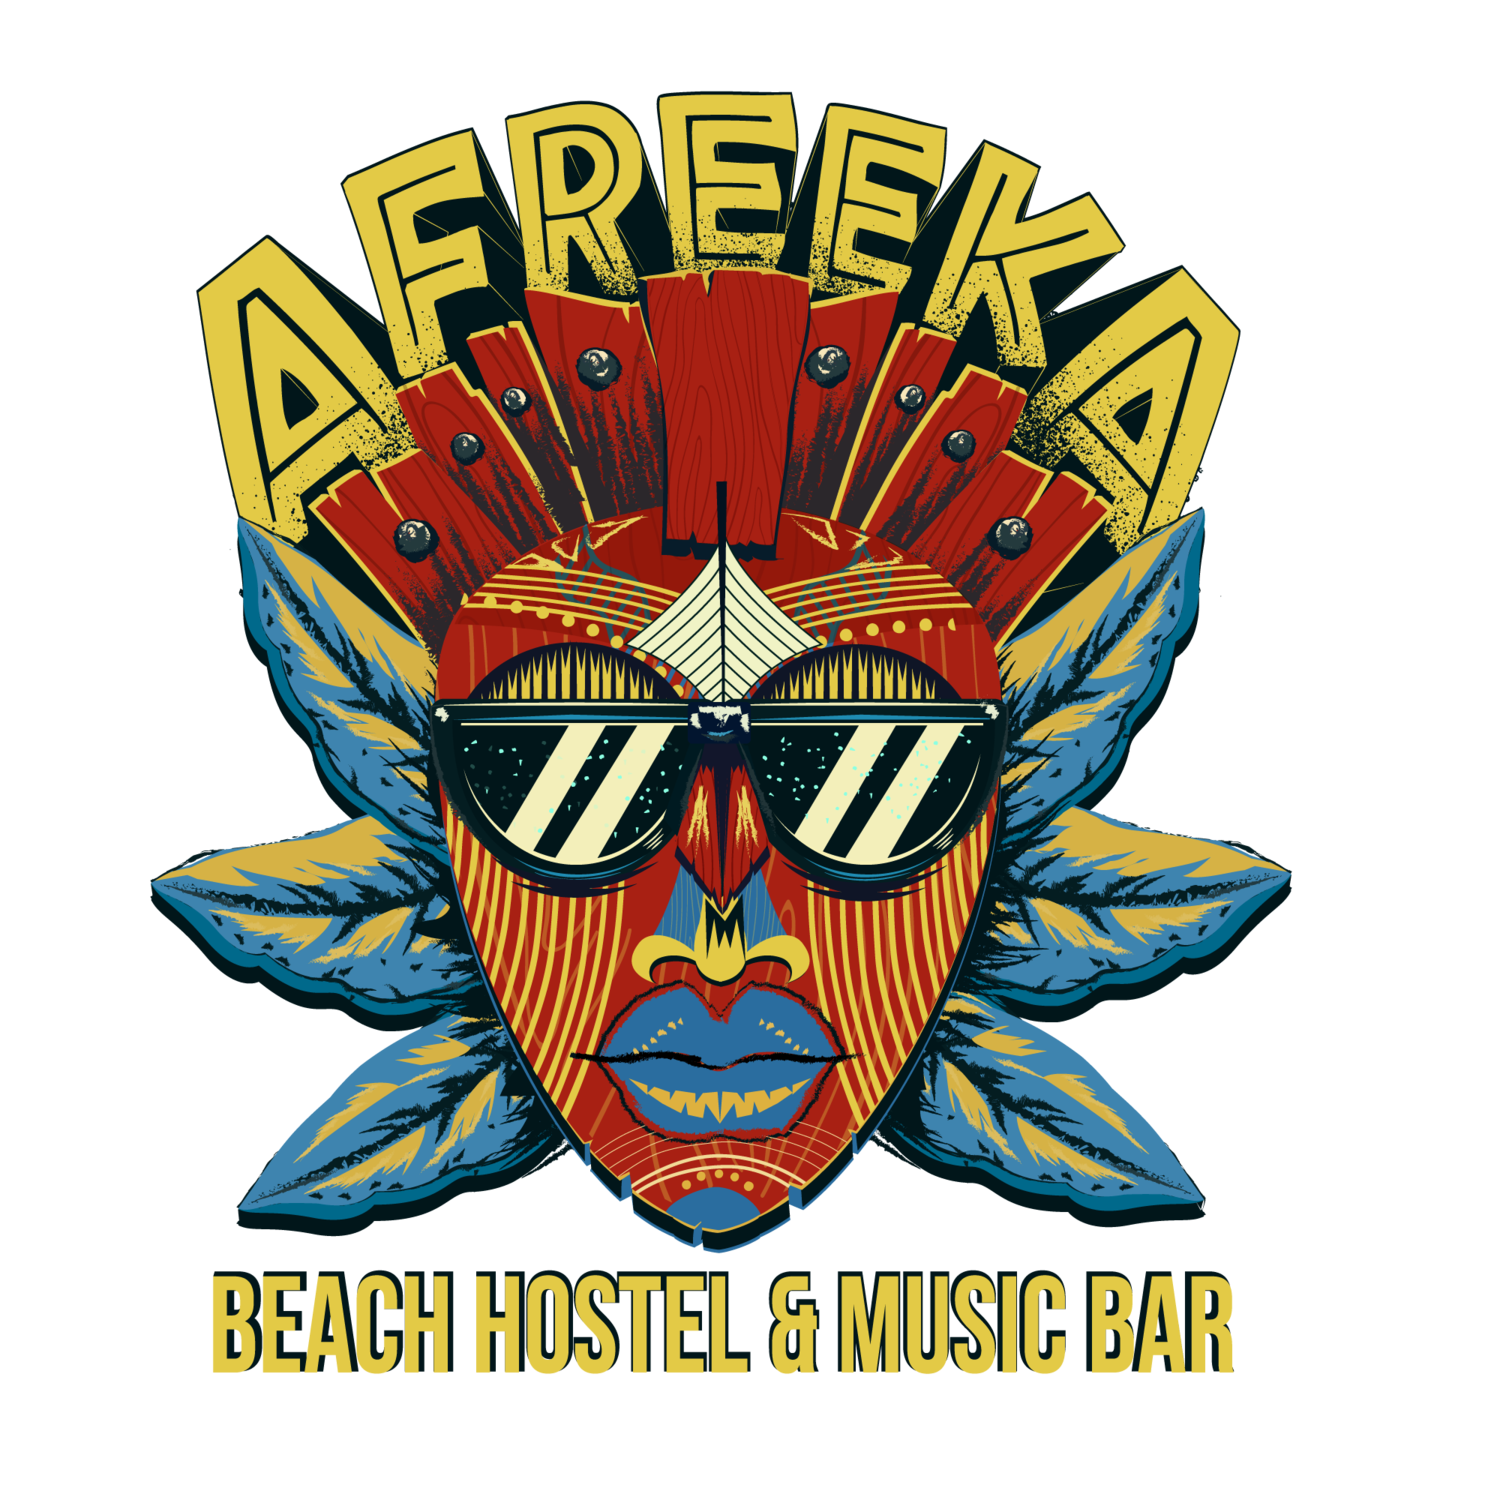 Afreeka Beach Hostel